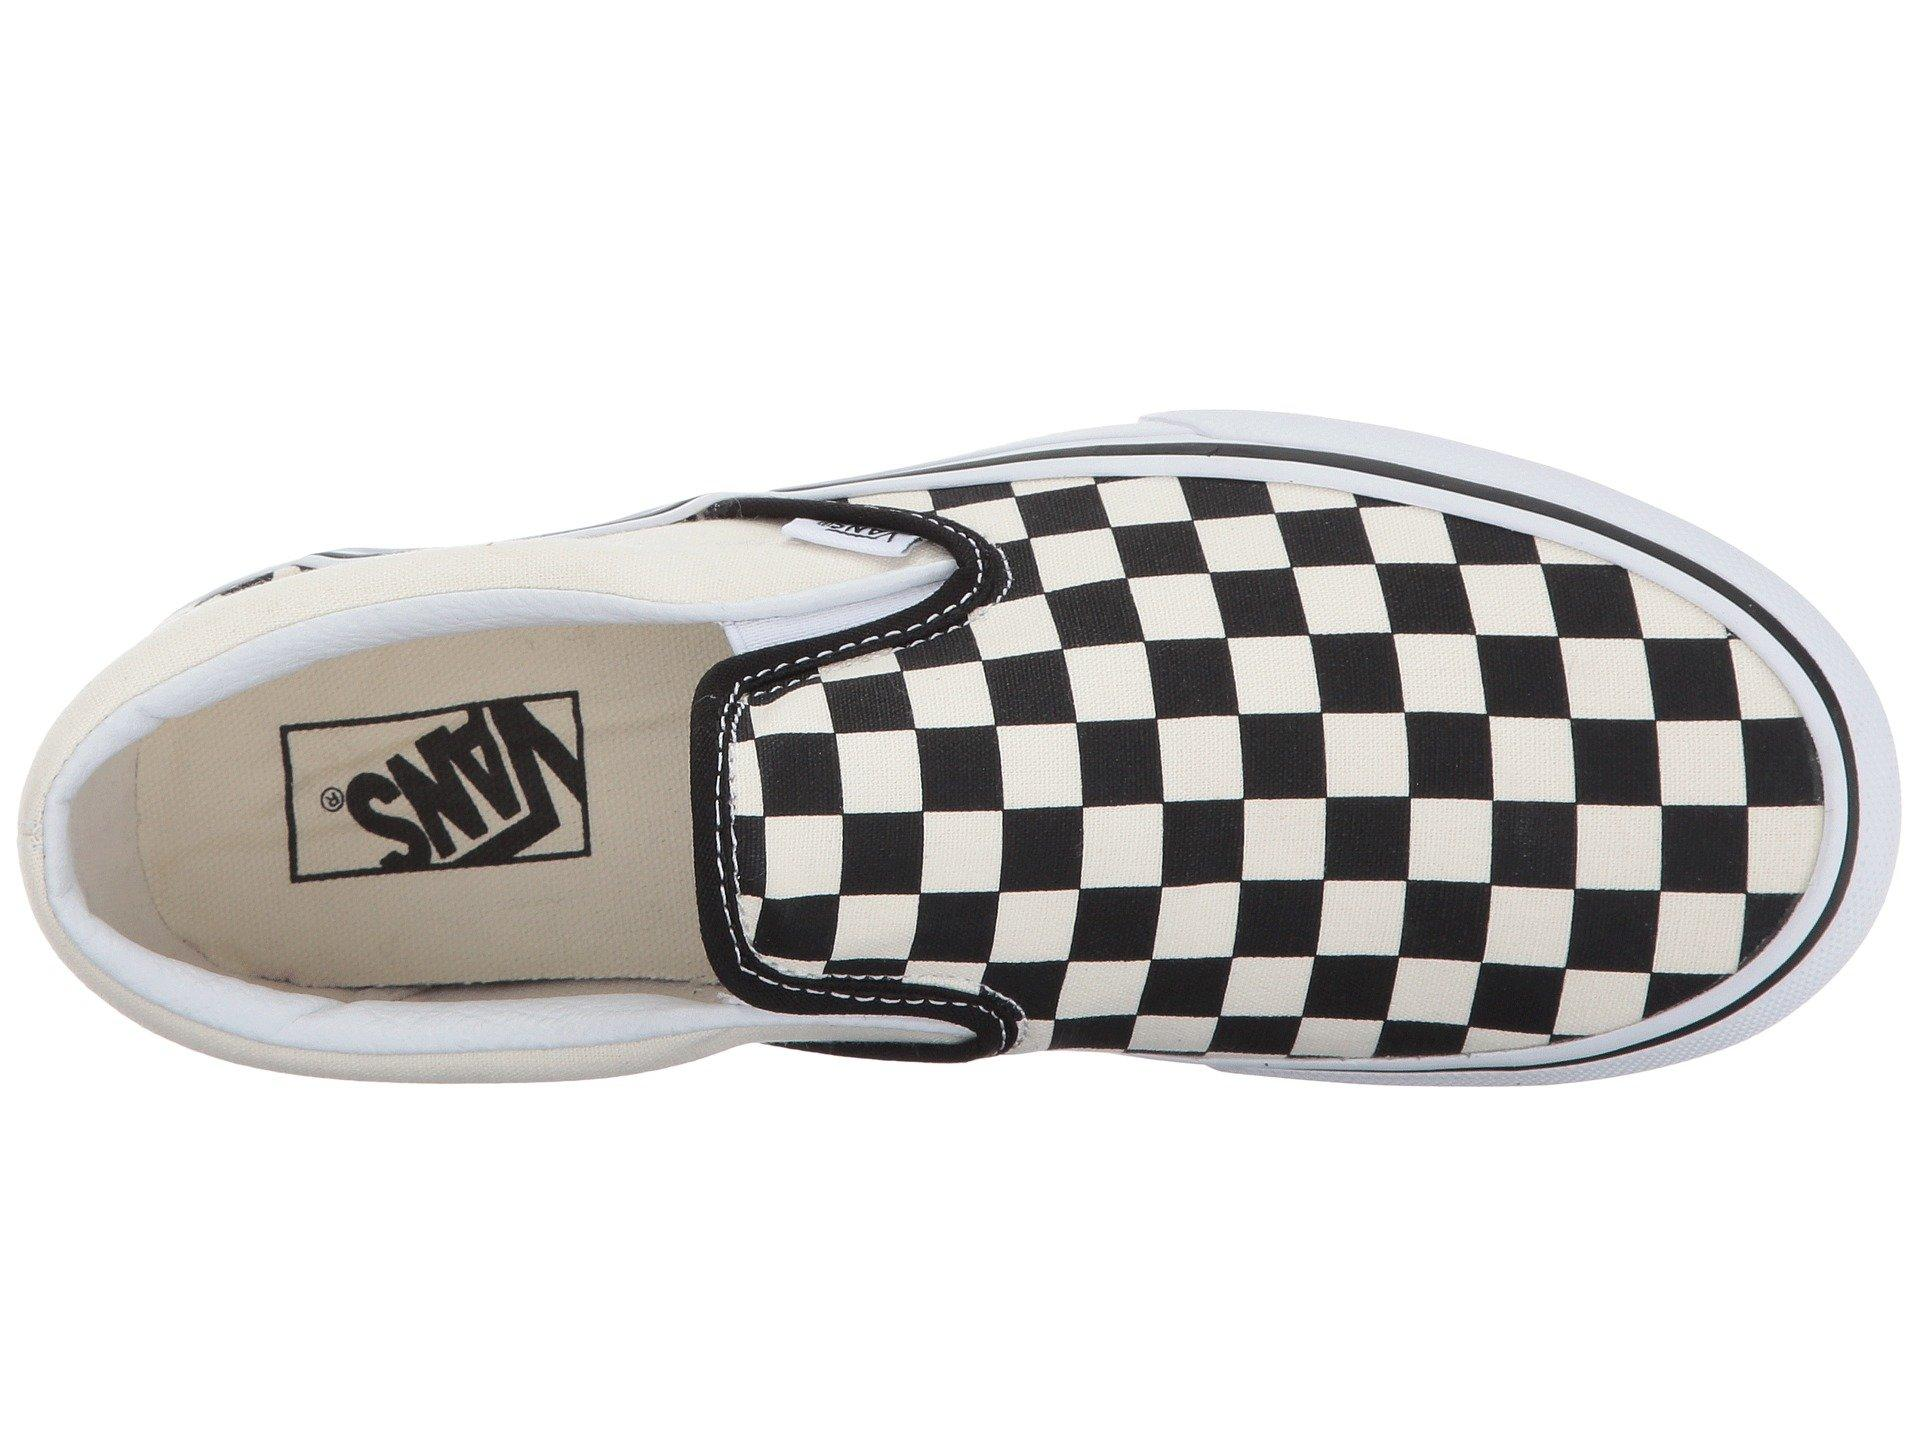 7681ec96077 Vans - White Women s Checkerboard Slip-on Platform Sneakers - Lyst. View  fullscreen